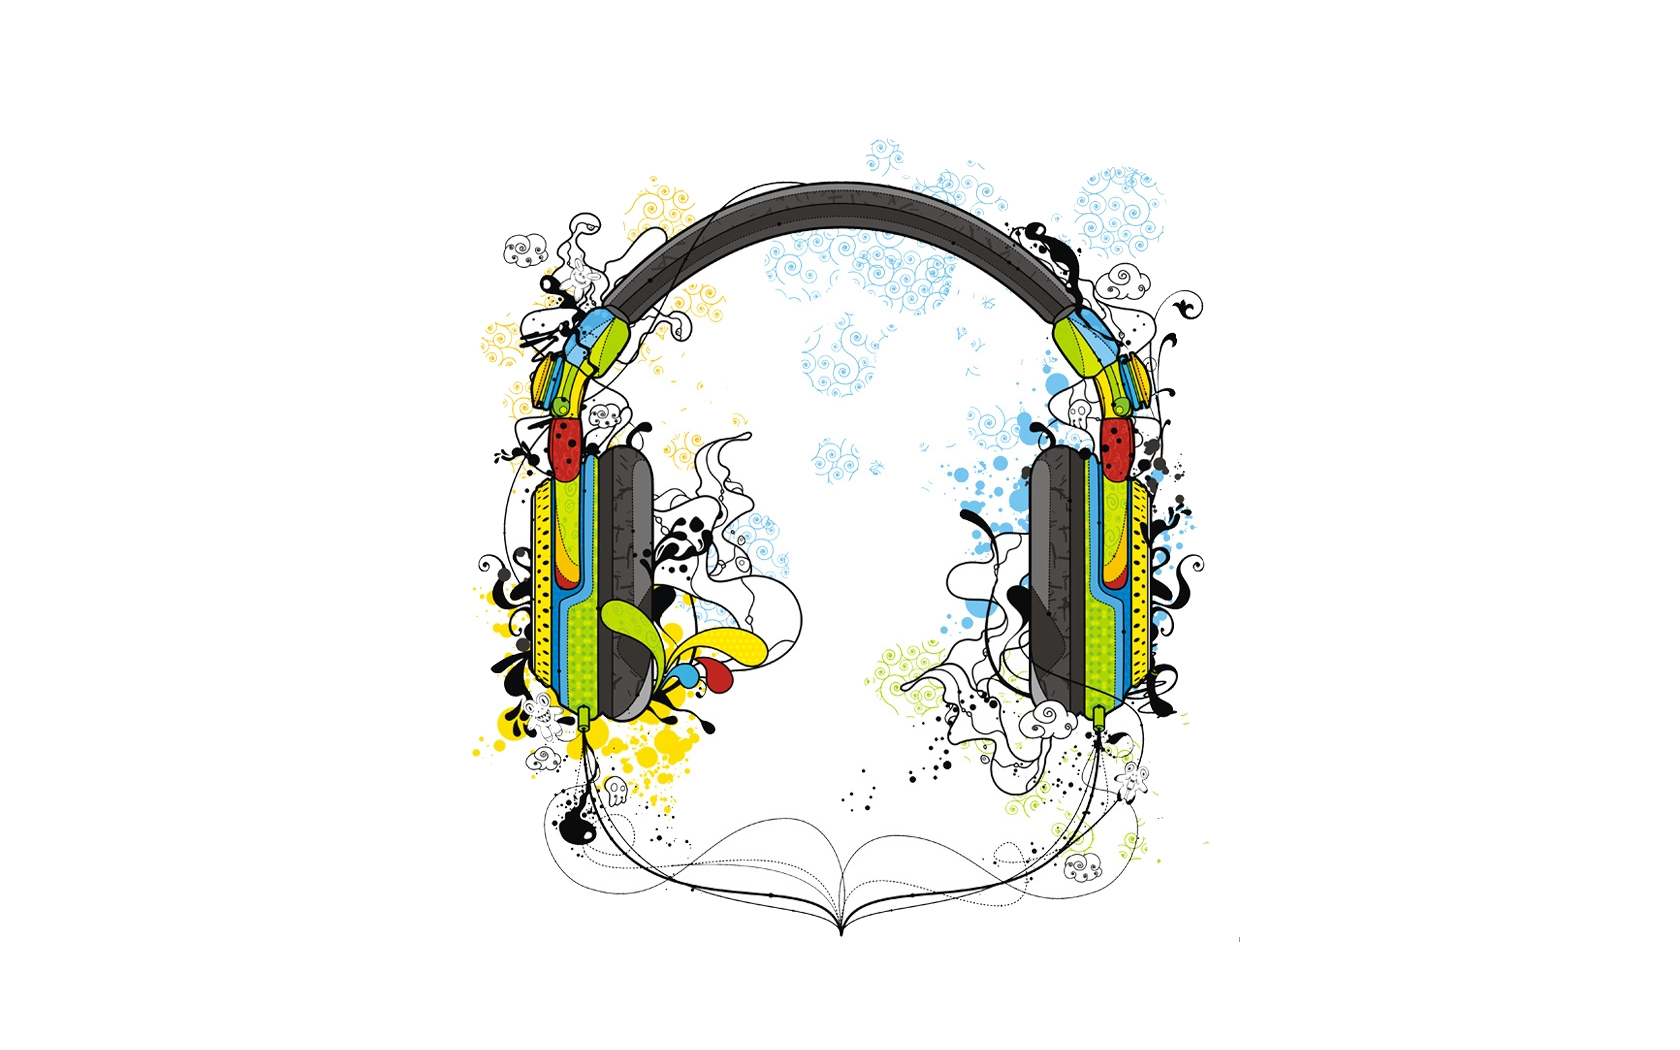 Music musical imagination wallpaper